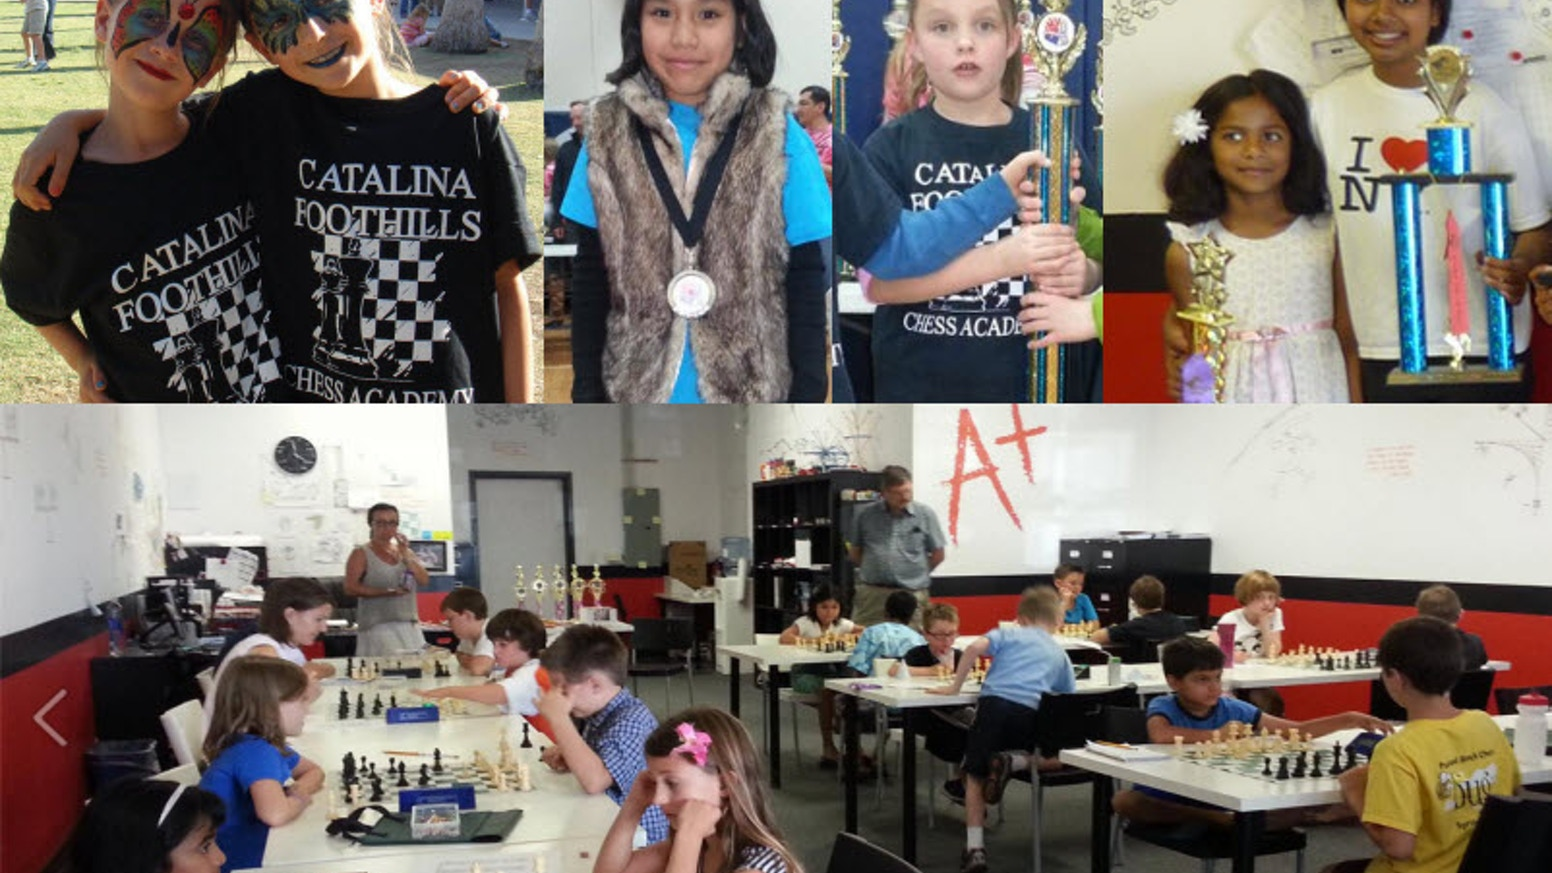 1st CHESS & SCIENCE FESTIVAL & All-Girls Tournament in Tucson. April 13, 2013. Funds are needed to organize the event.